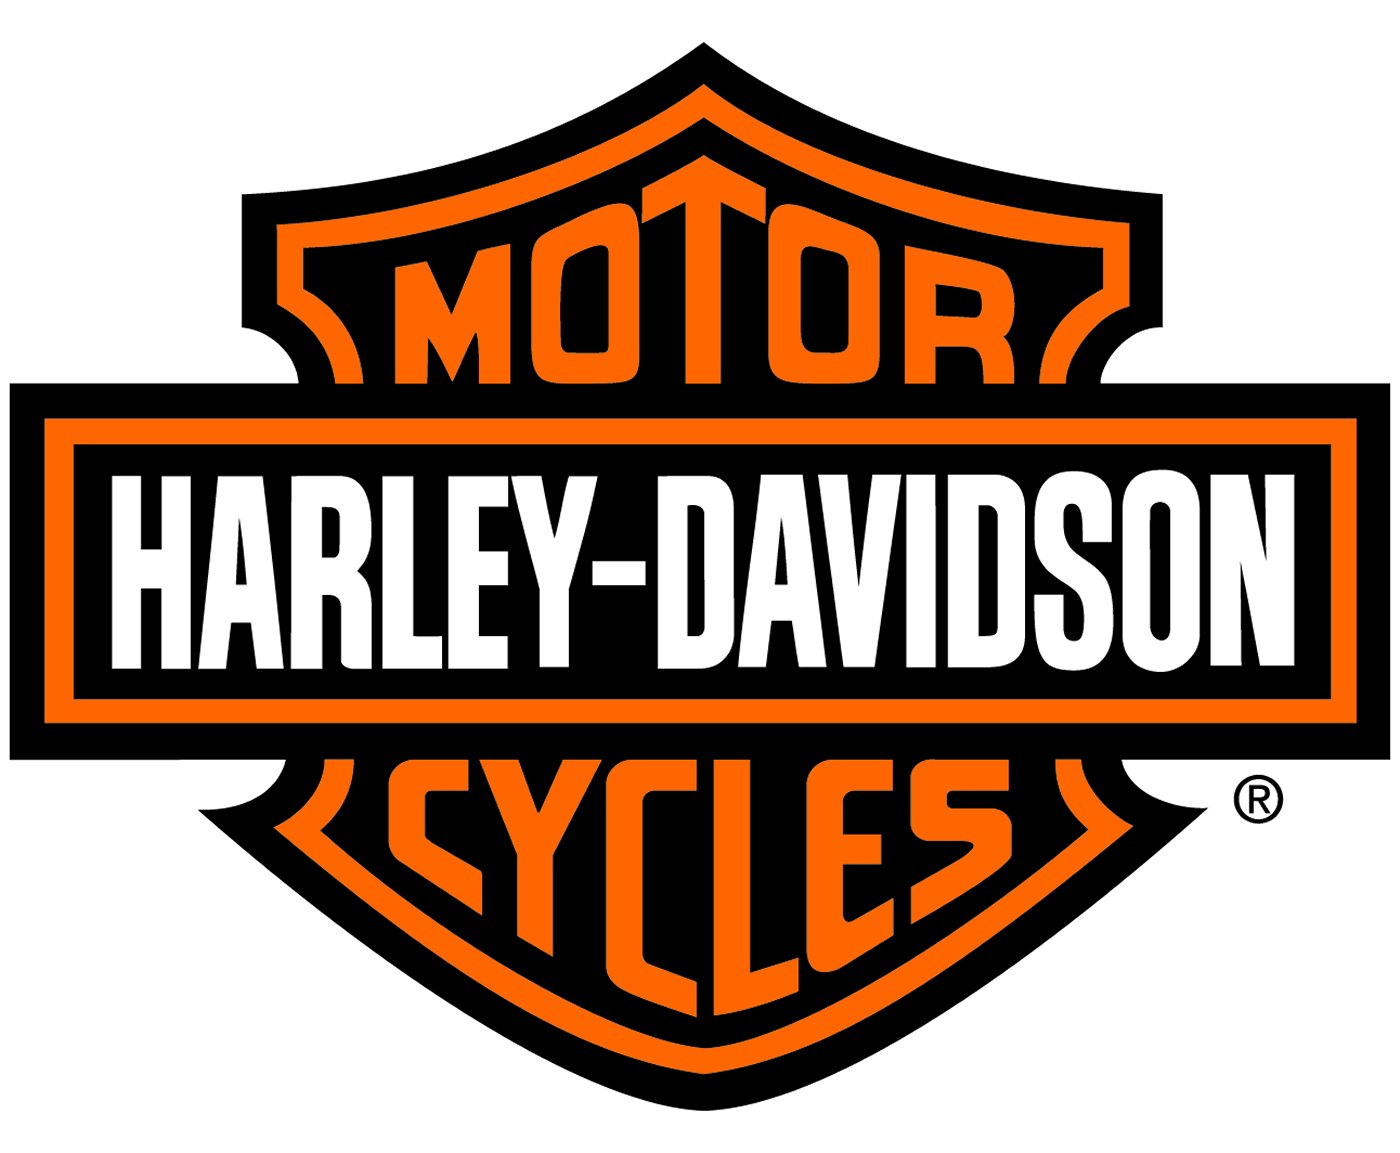 File Harley davidson logo on mercedes benz logo usage